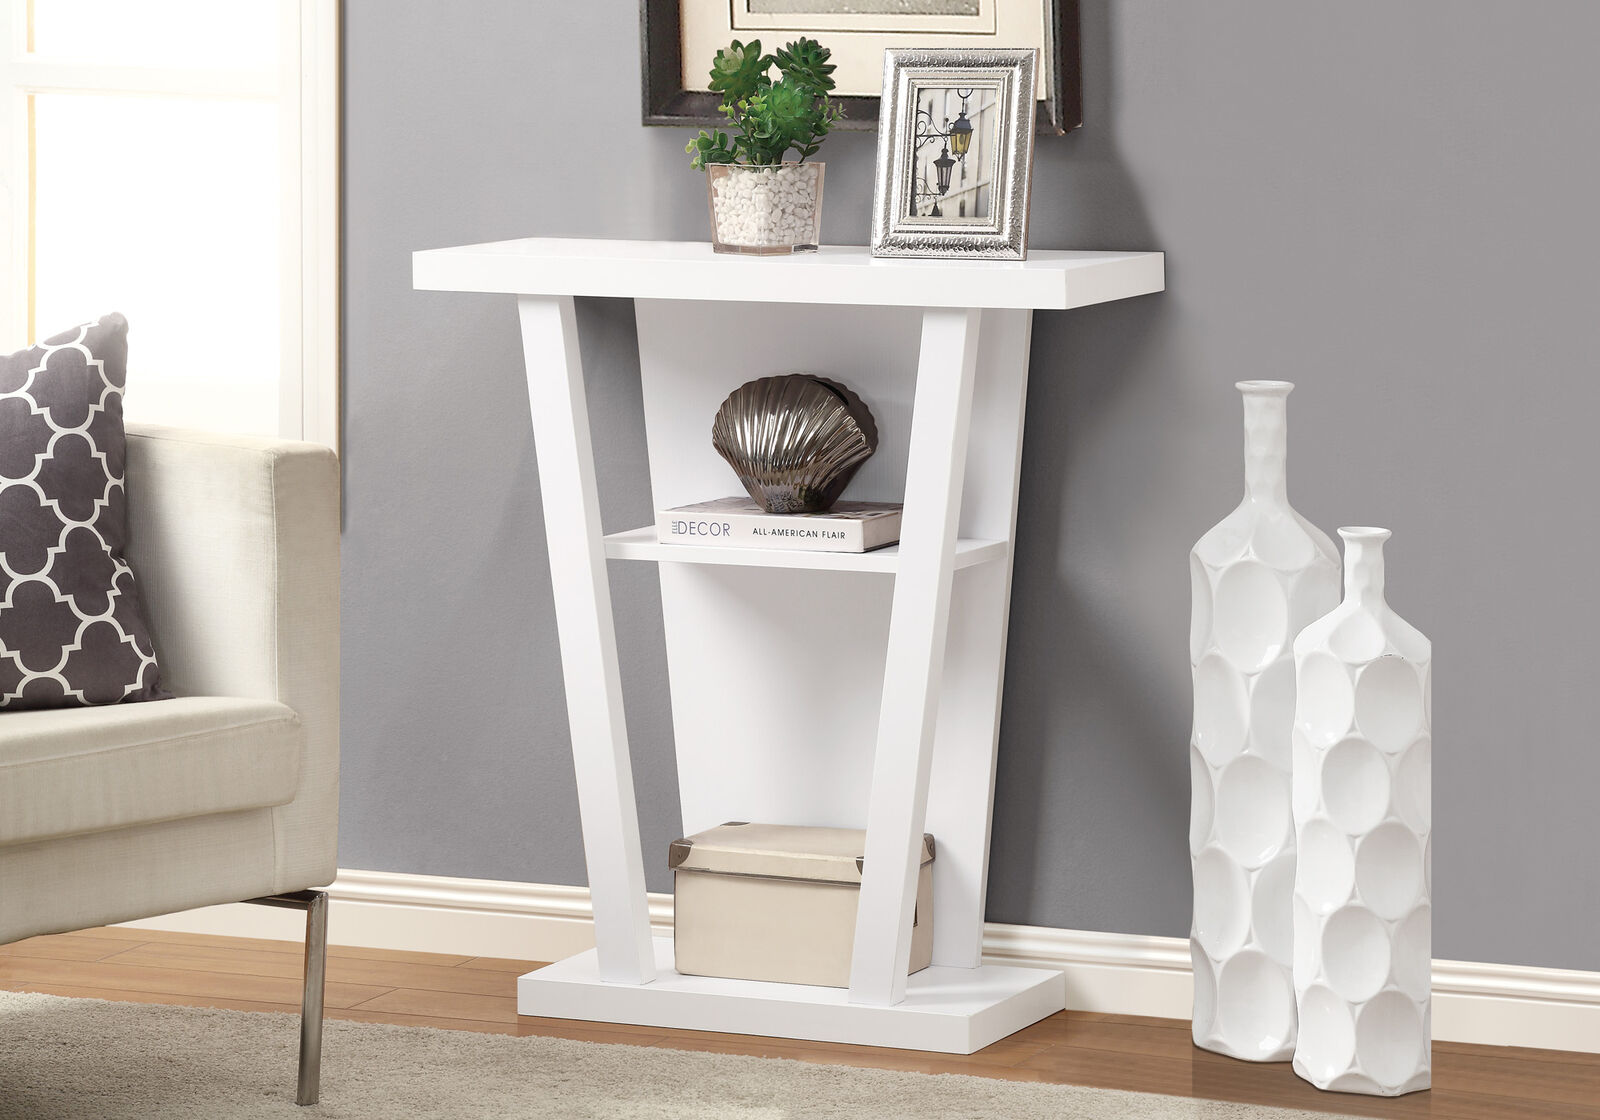 monarch hall console accent table inch white black lamp shades teak garden side round glass small coffee under dining tables toronto target mirrored tall end acrylic making legs